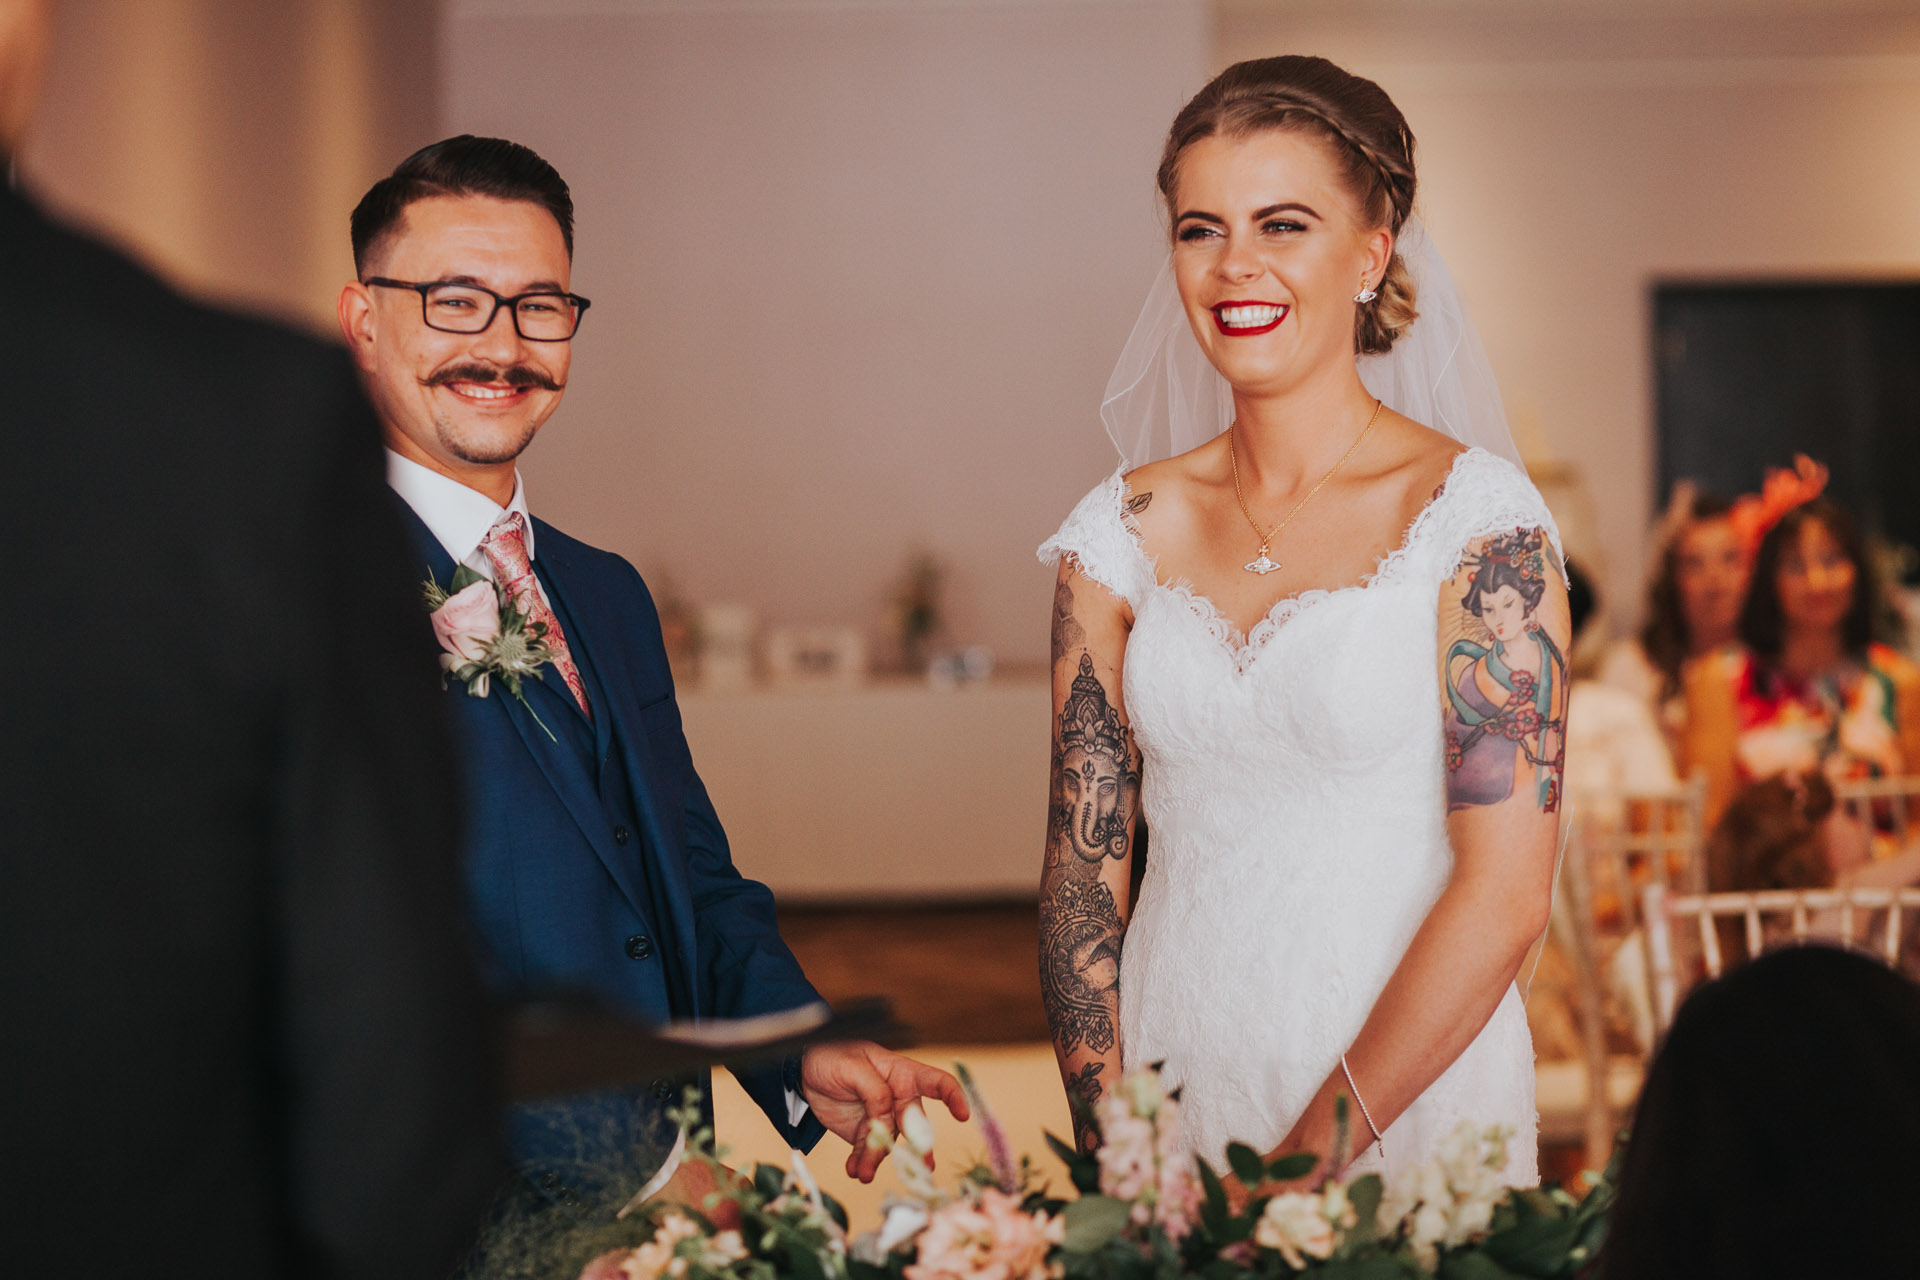 Bride and groom look happy on their wedding day in Manchester